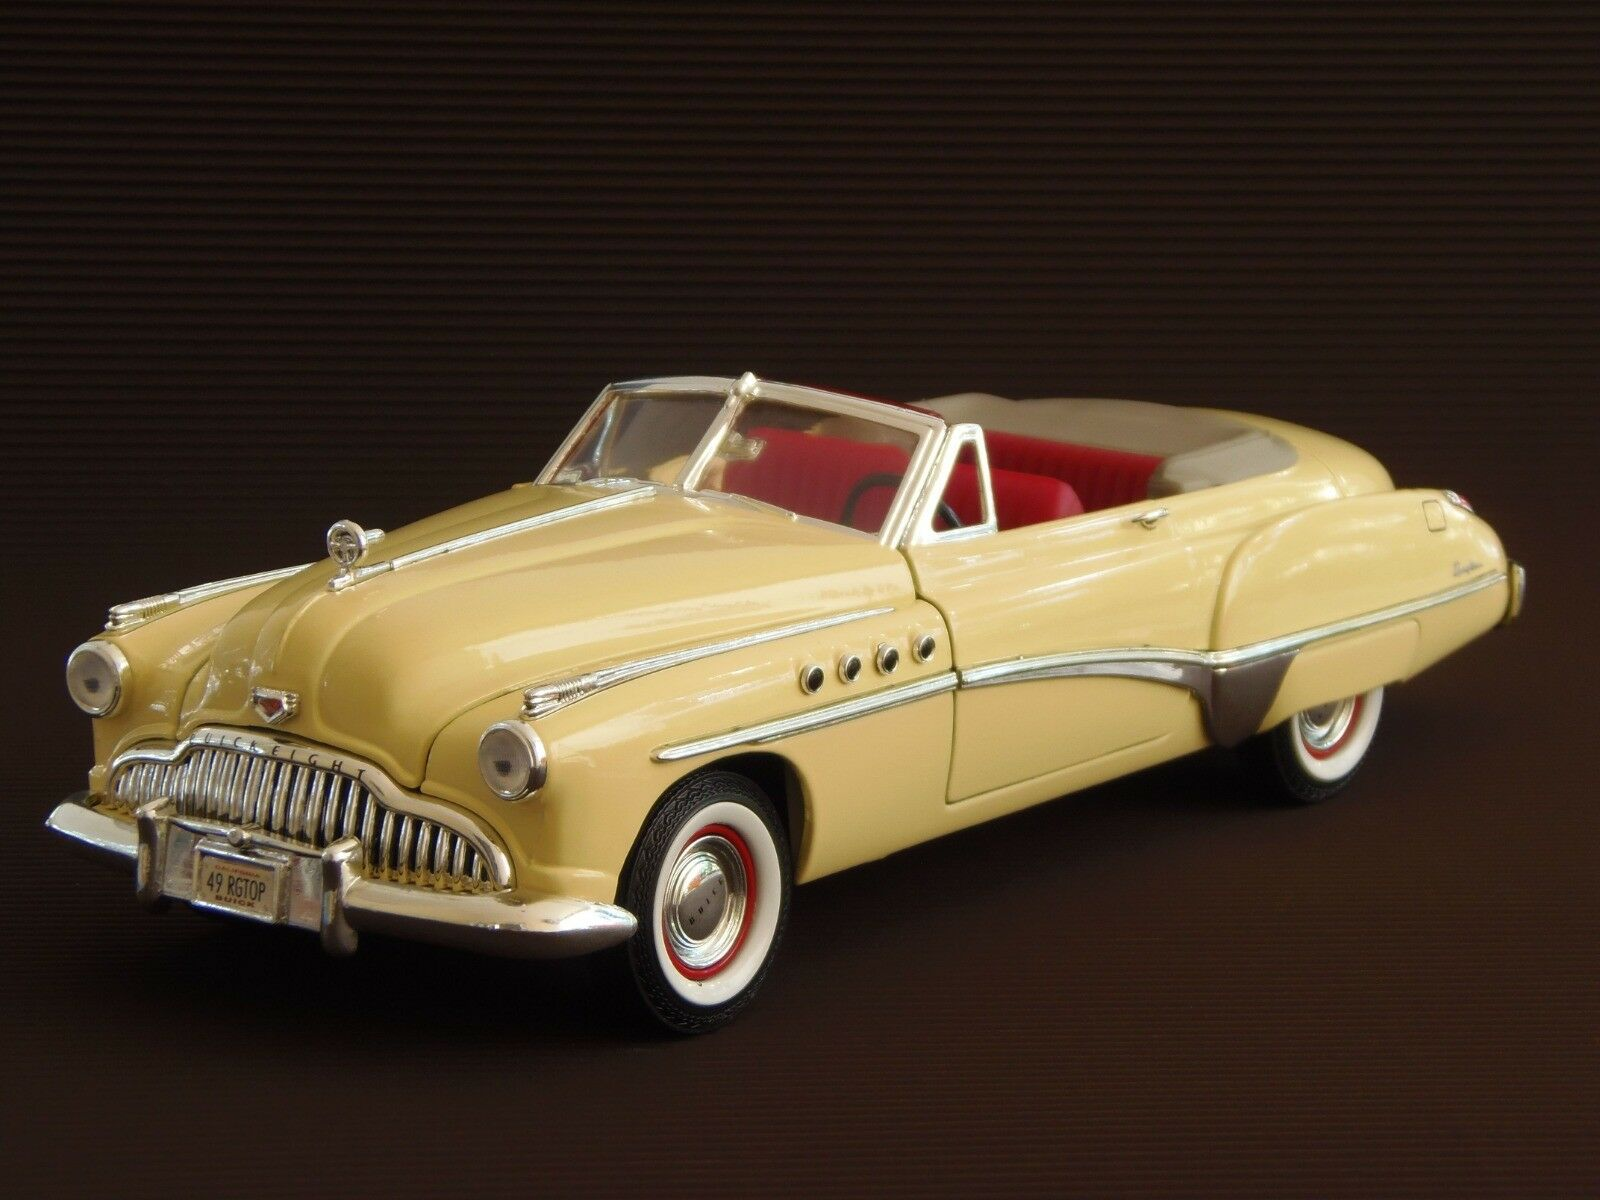 Franklin Mint 1 24 Scale 1949 Buick Roadmaster Precision Model MIB